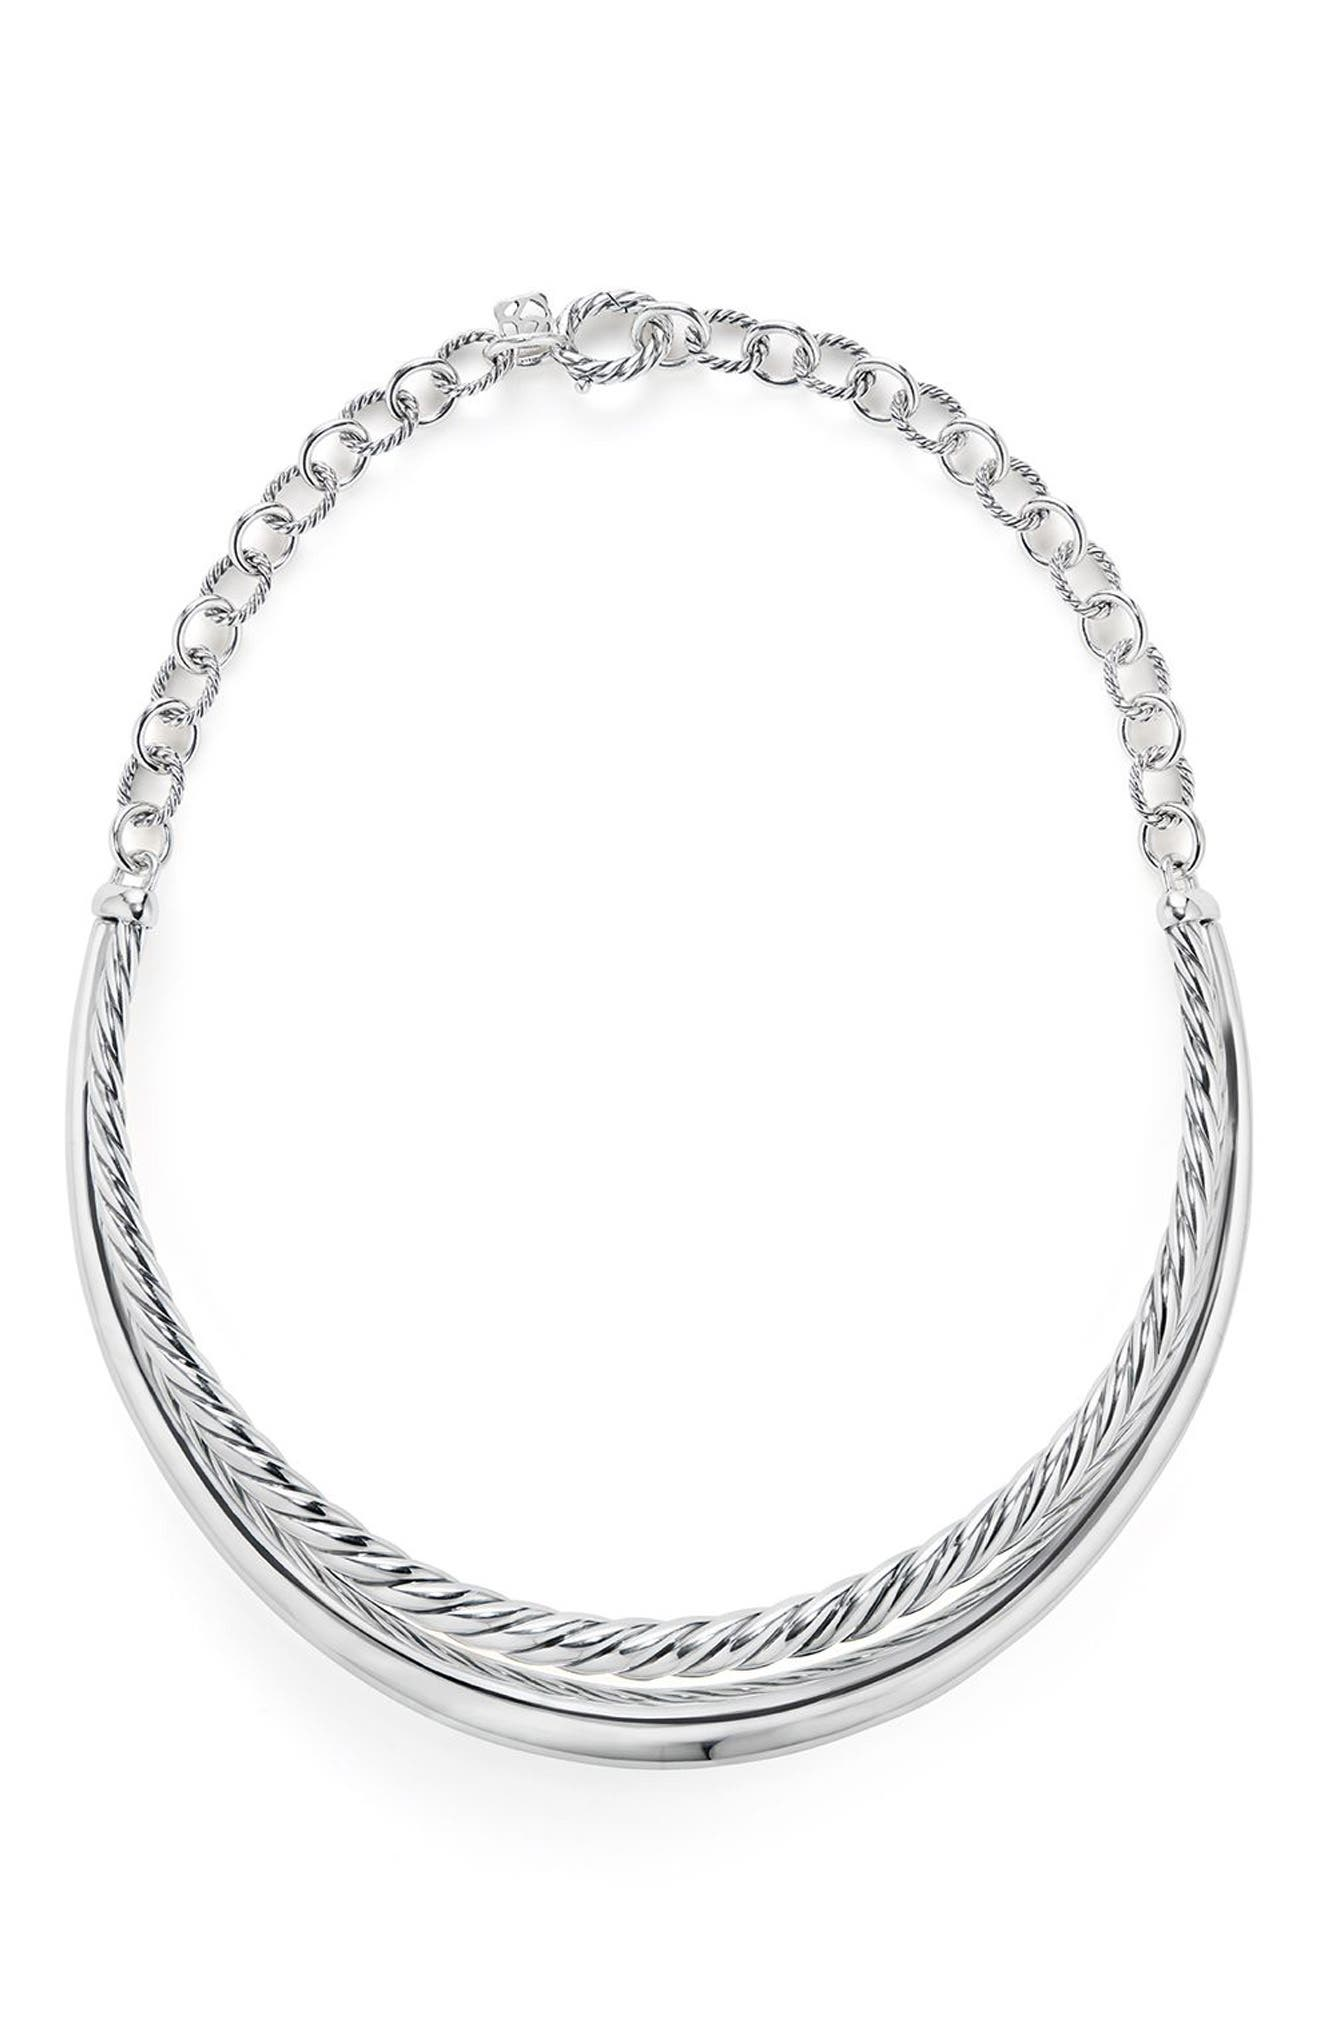 David Yurman Pure Form Collar Necklace